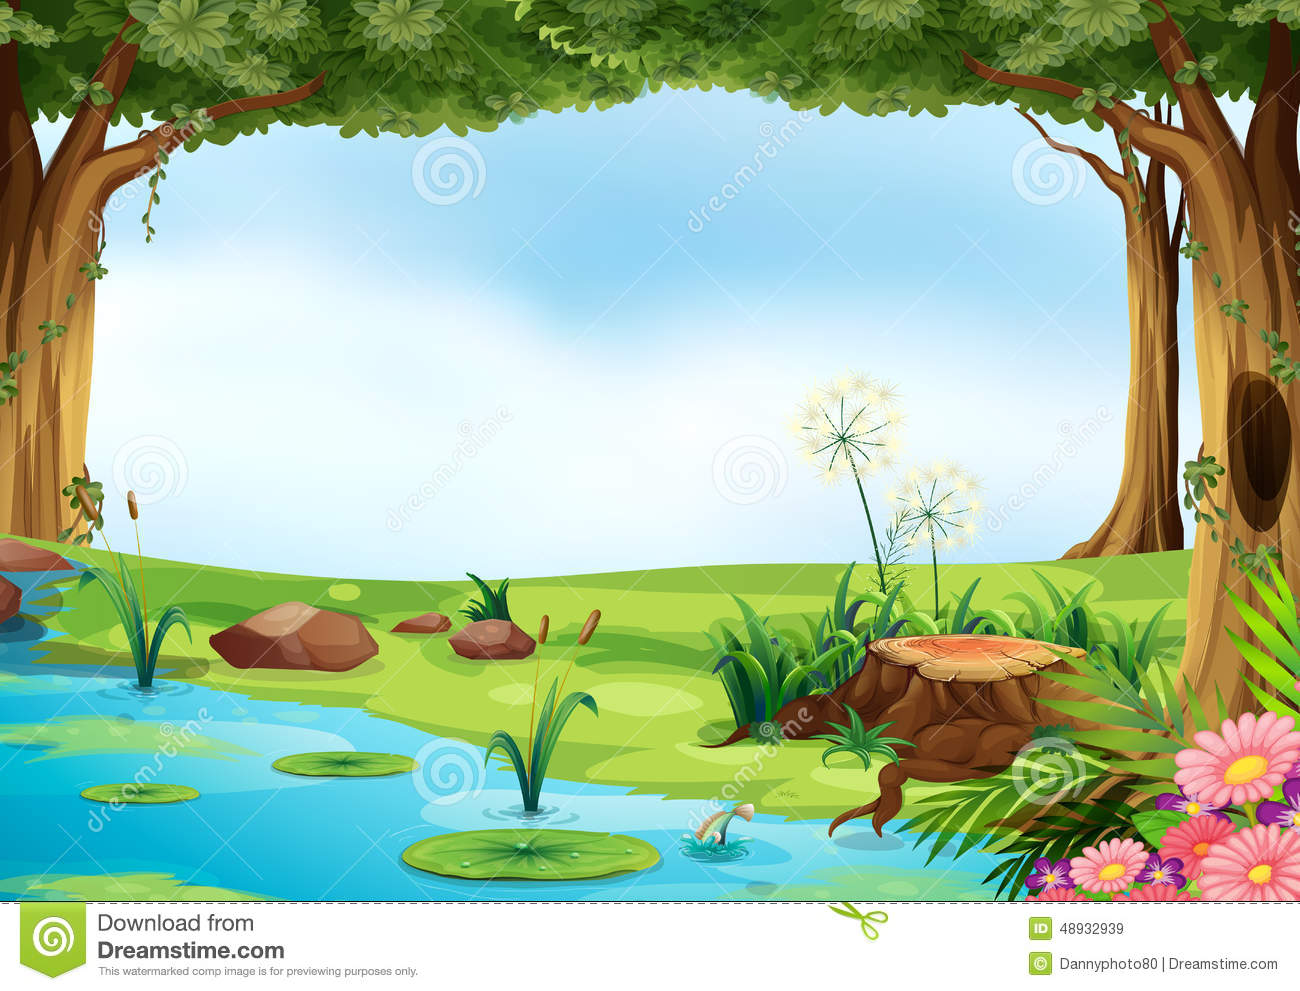 Clipart of a pond and tree.